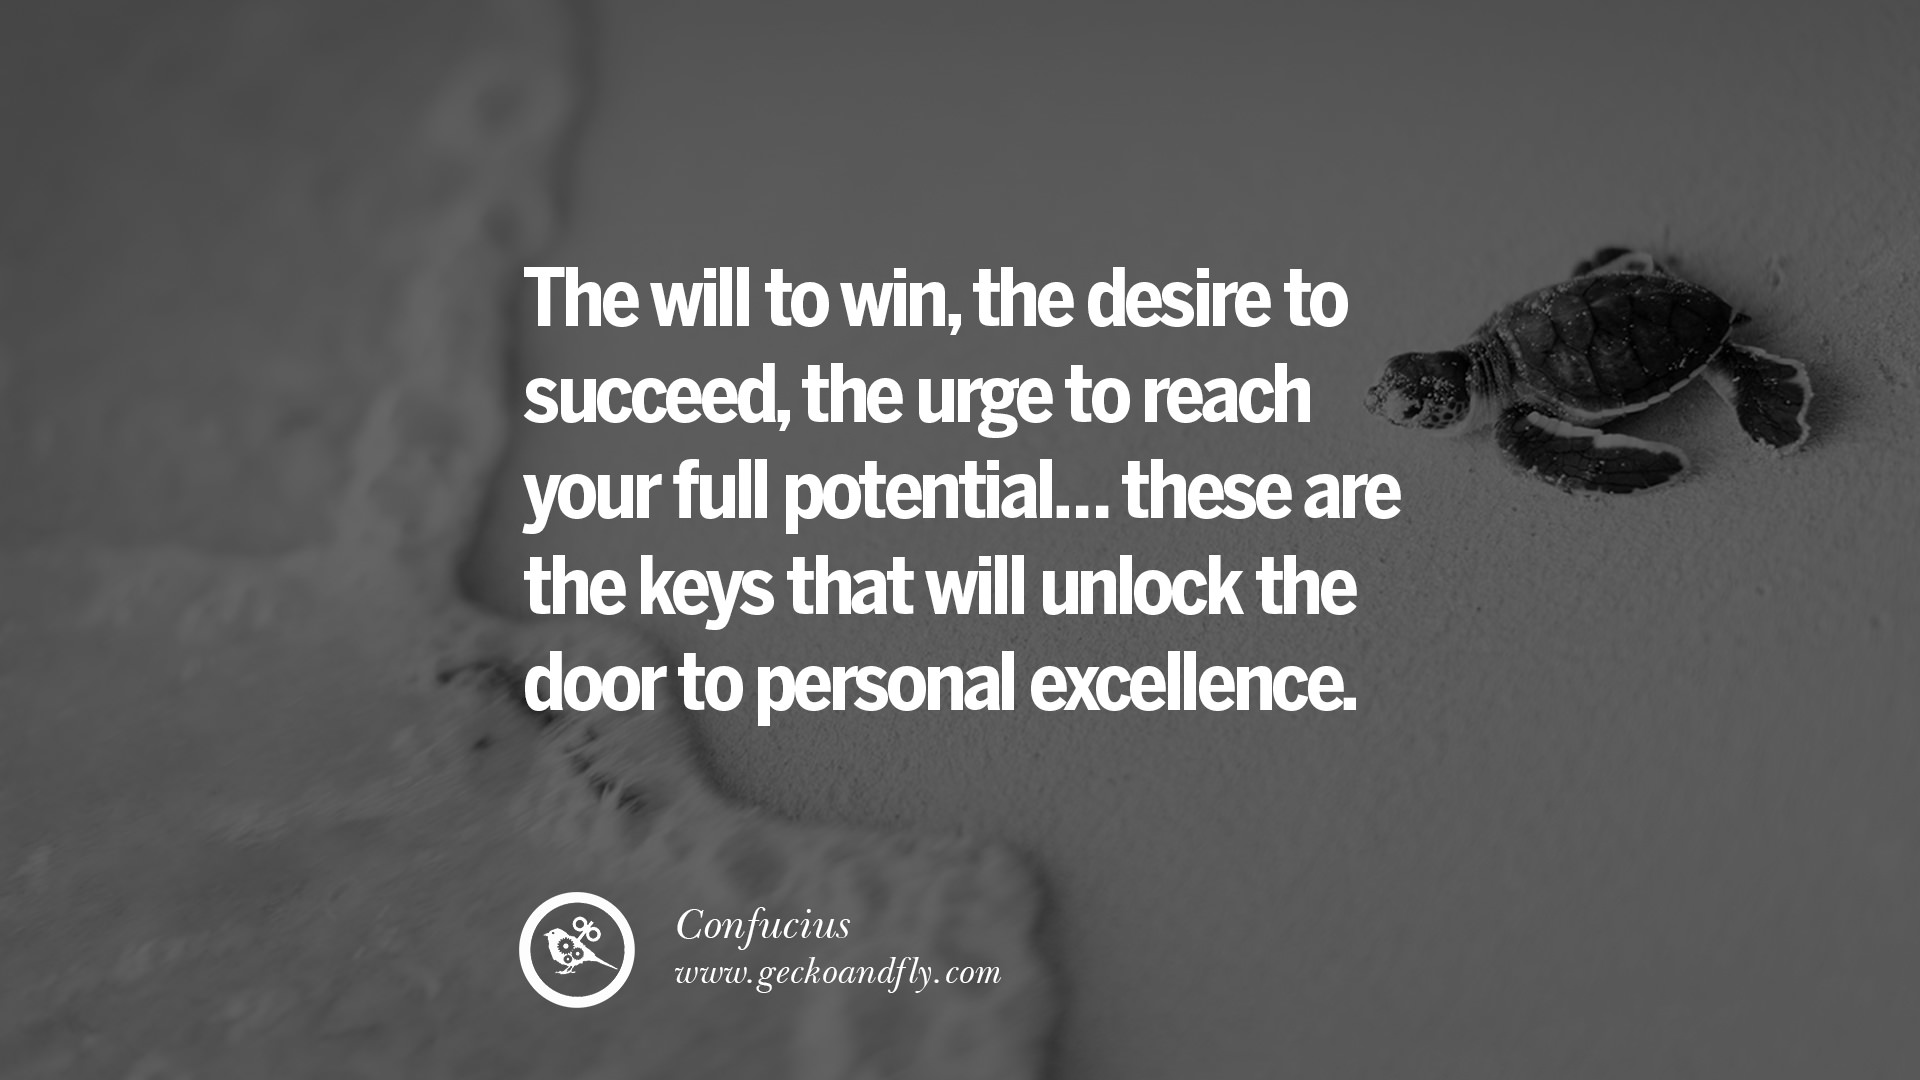 The will to win the desire to succeed the urge to reach your full potential these are the keys that will unlock the door to personal excellence